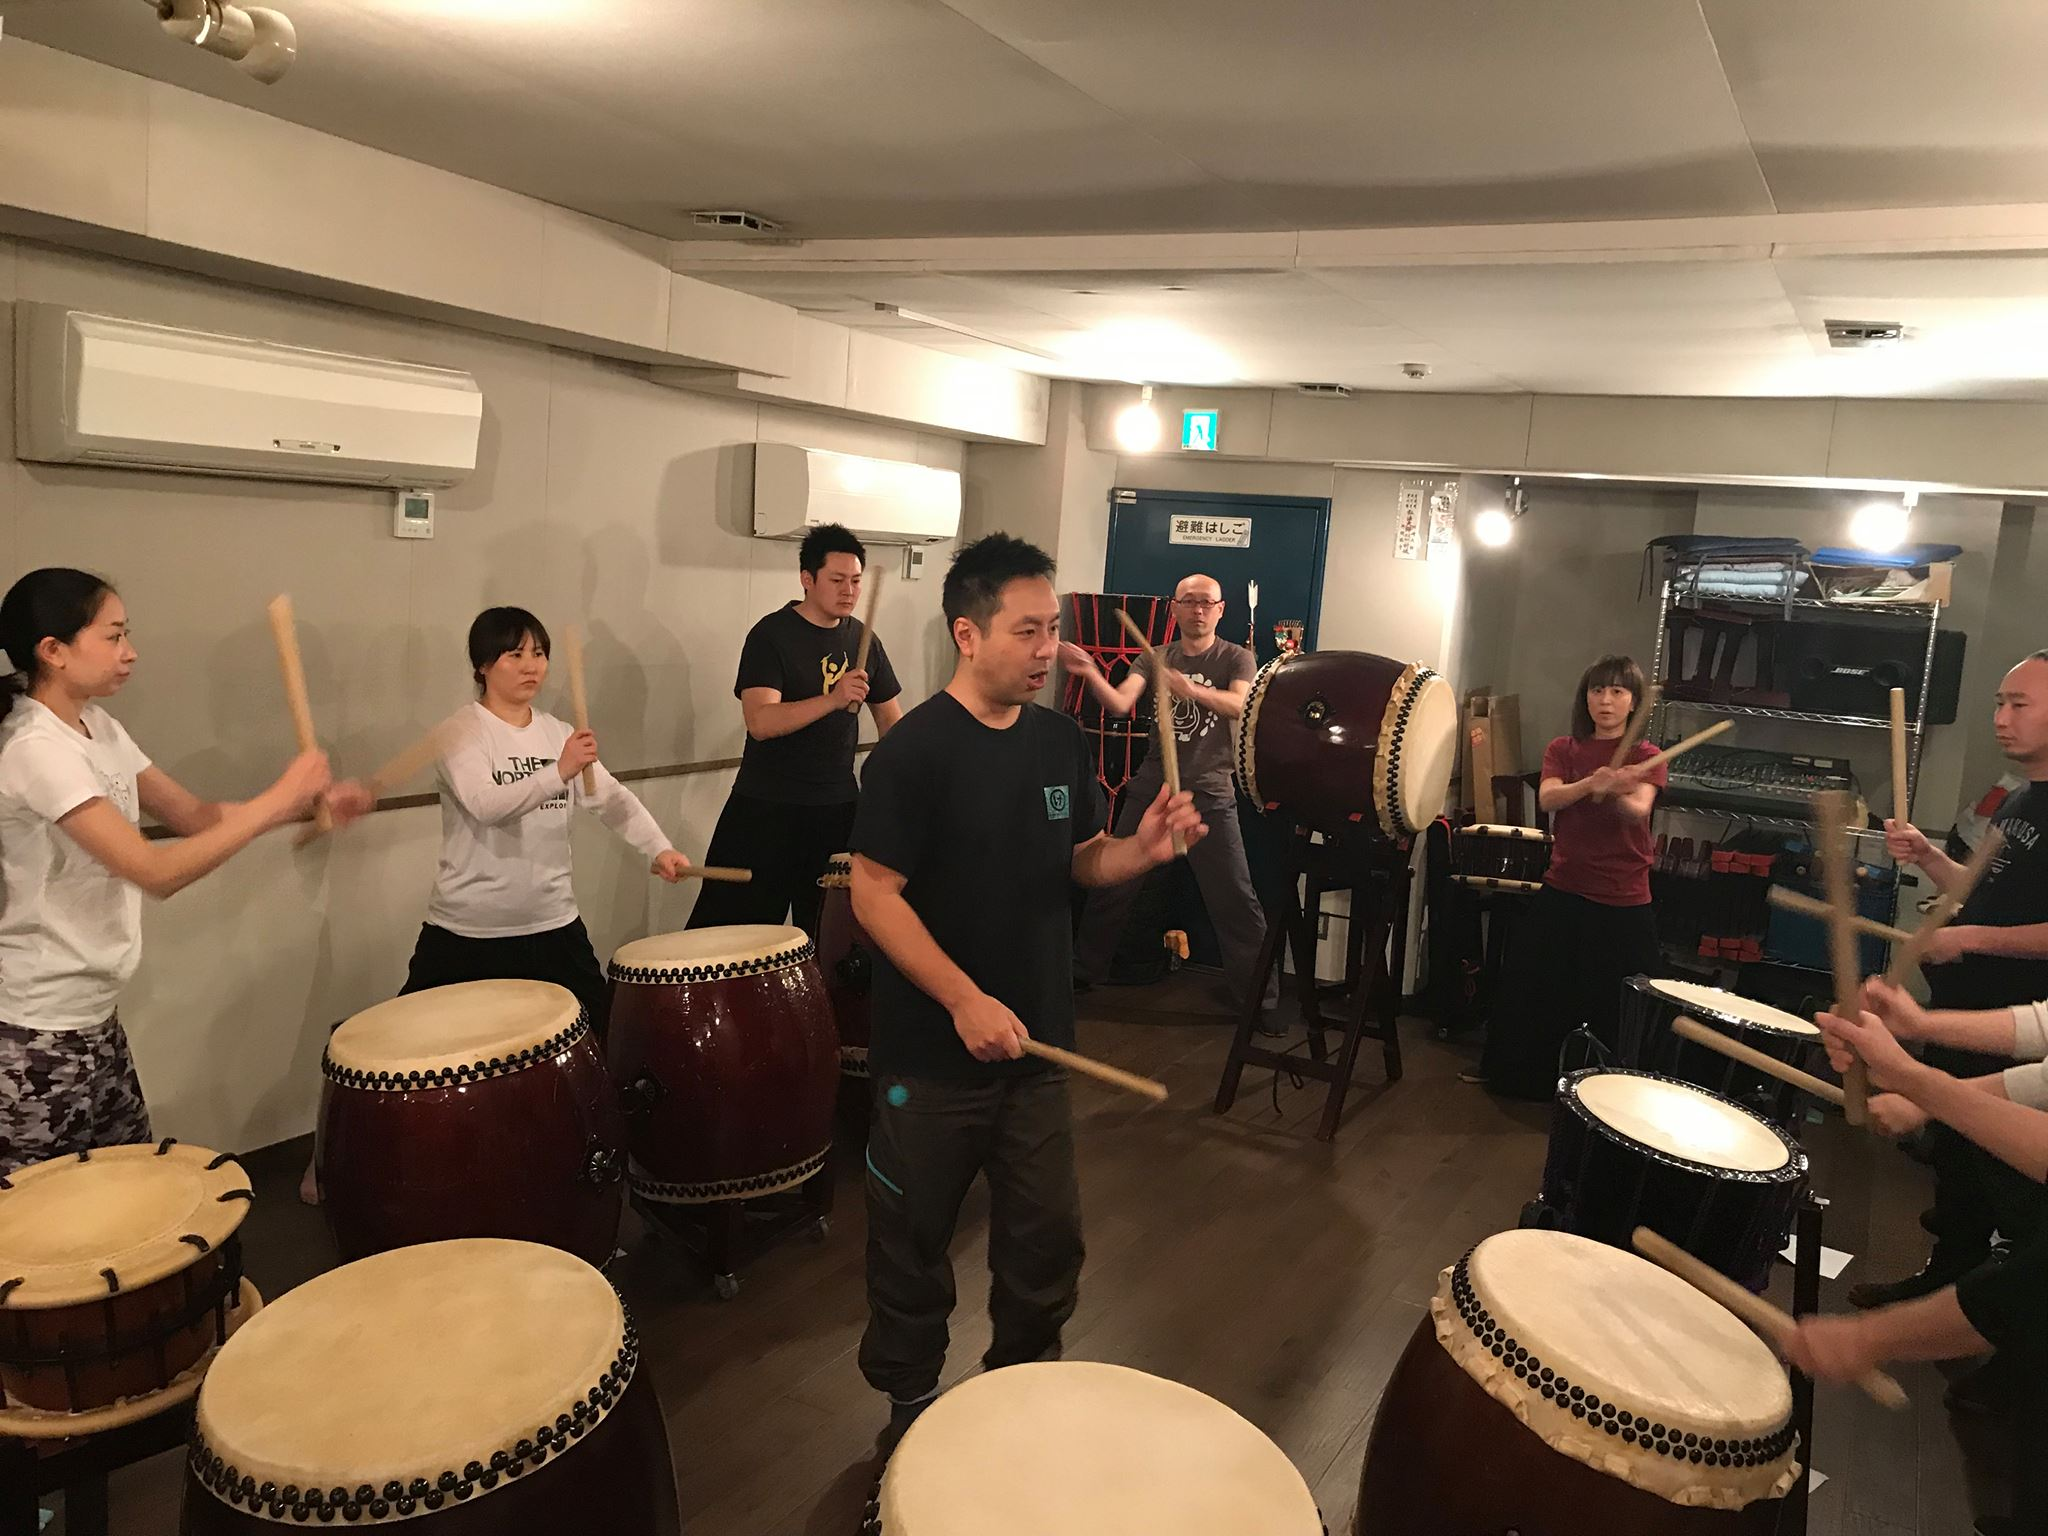 Let's Try Taiko! Workshop & Lunch 初心者向け和太鼓体験会 + ランチ会